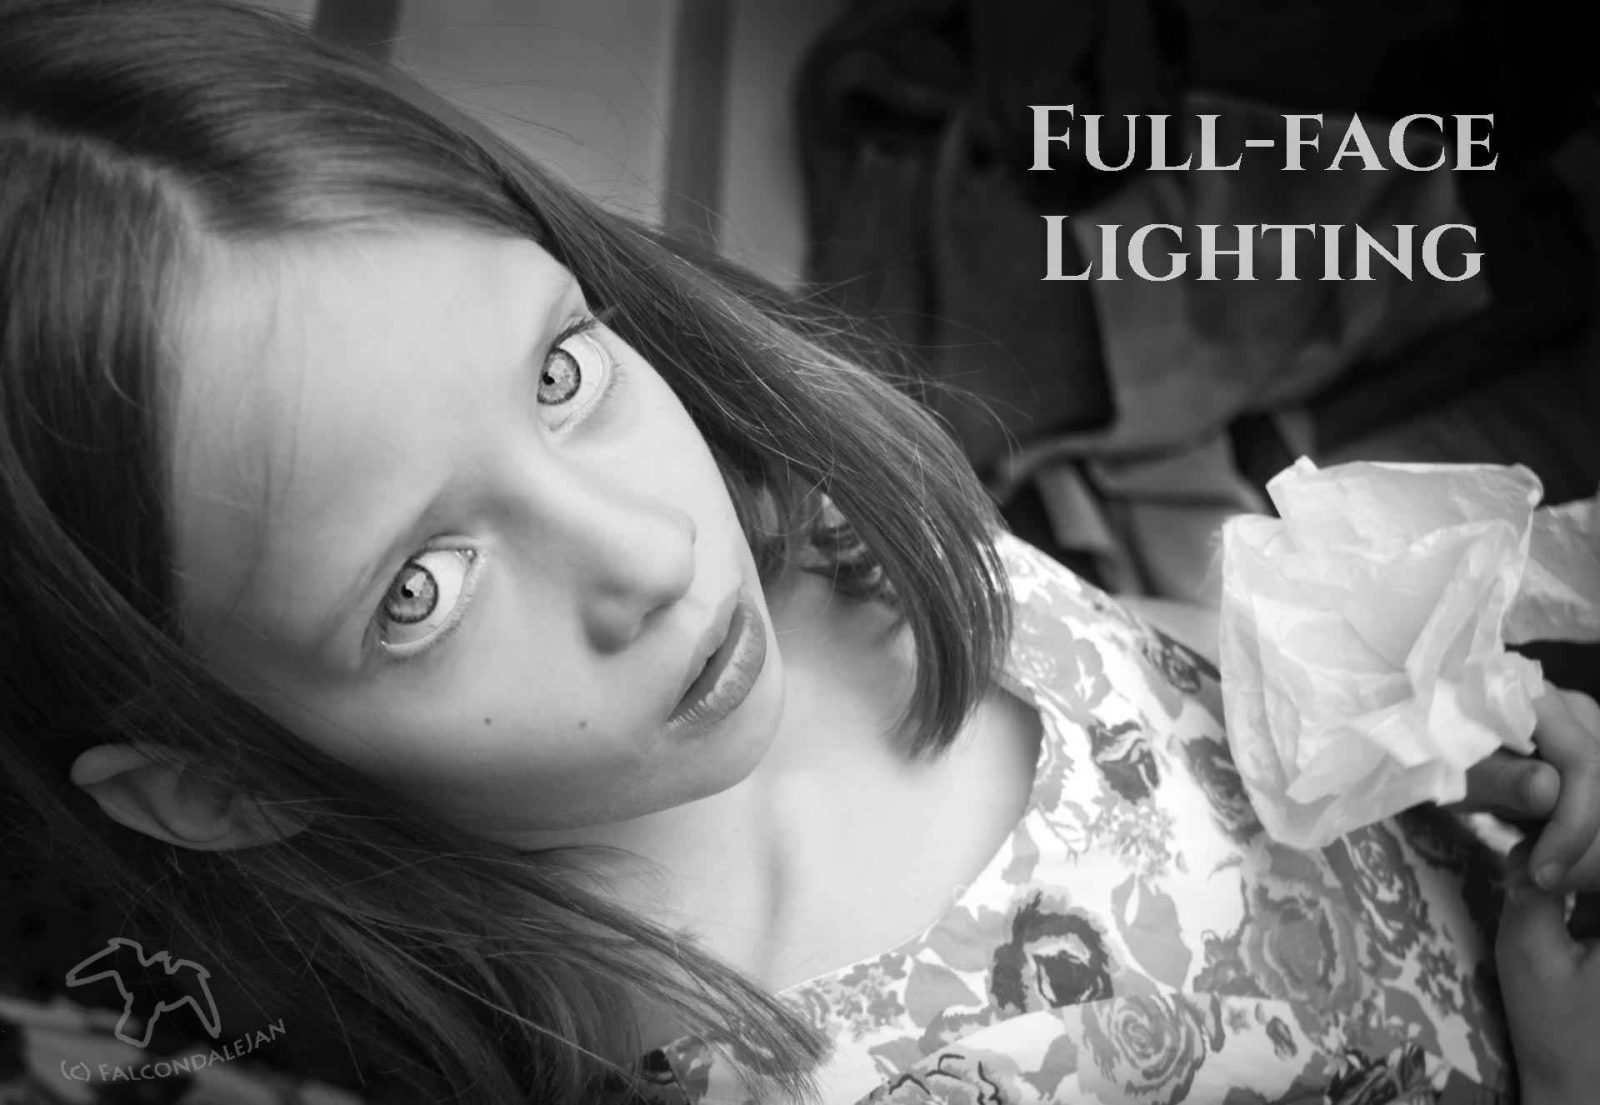 Reasons to shoot black and white part 5, Flattering portraits. More reasons to choose black and white in photography, this time to make more flattering portraits by using monochrome. Flatter skin tone and make a timeless and enduring image by switching to a black and white photo. Tips from Falcondalejan. Image description: little girl portrait, full face lighting.